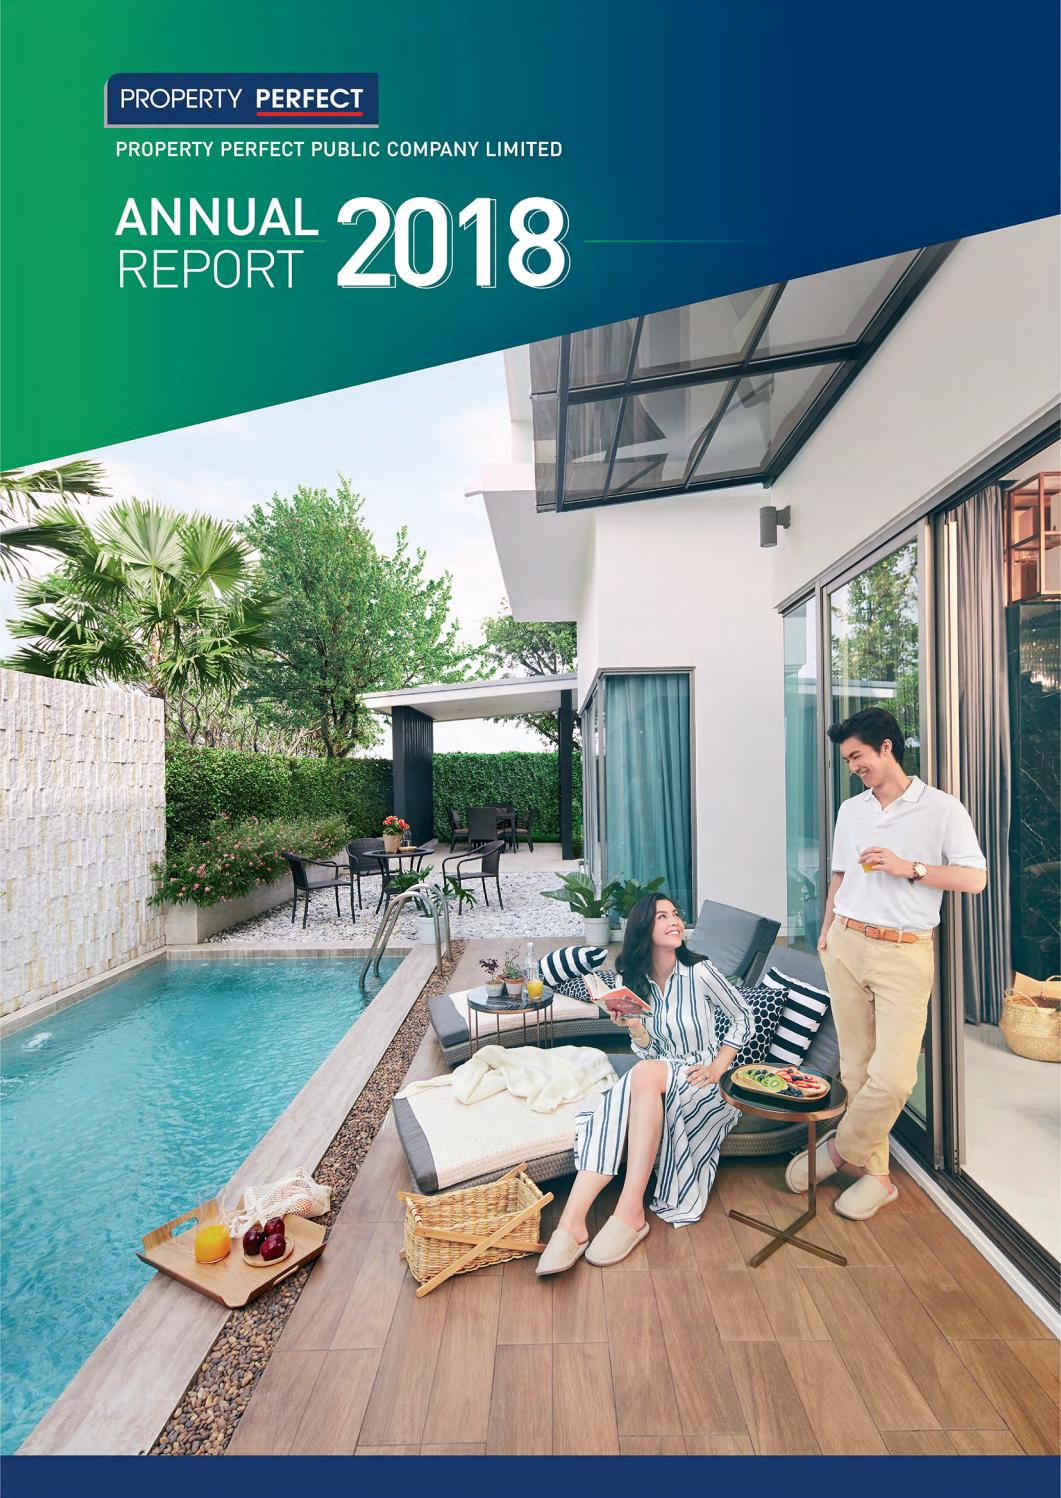 PF : Annual Report 2018 EN by propertyperfect shareinvestor